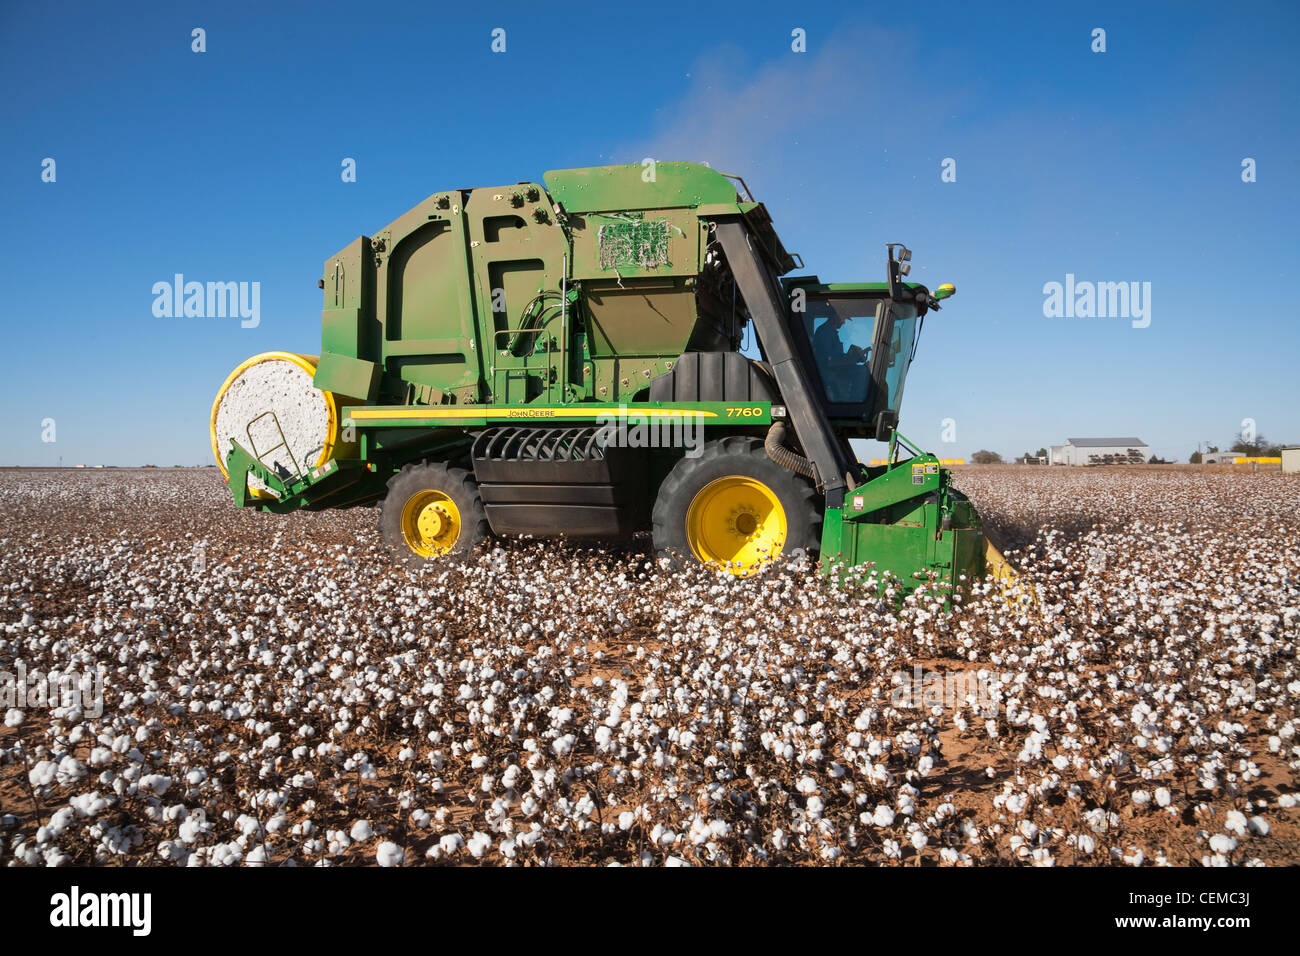 Agriculture - A John Deere 6-row on board module building cotton picker harvests a mature cotton field / near Austin, - Stock Image